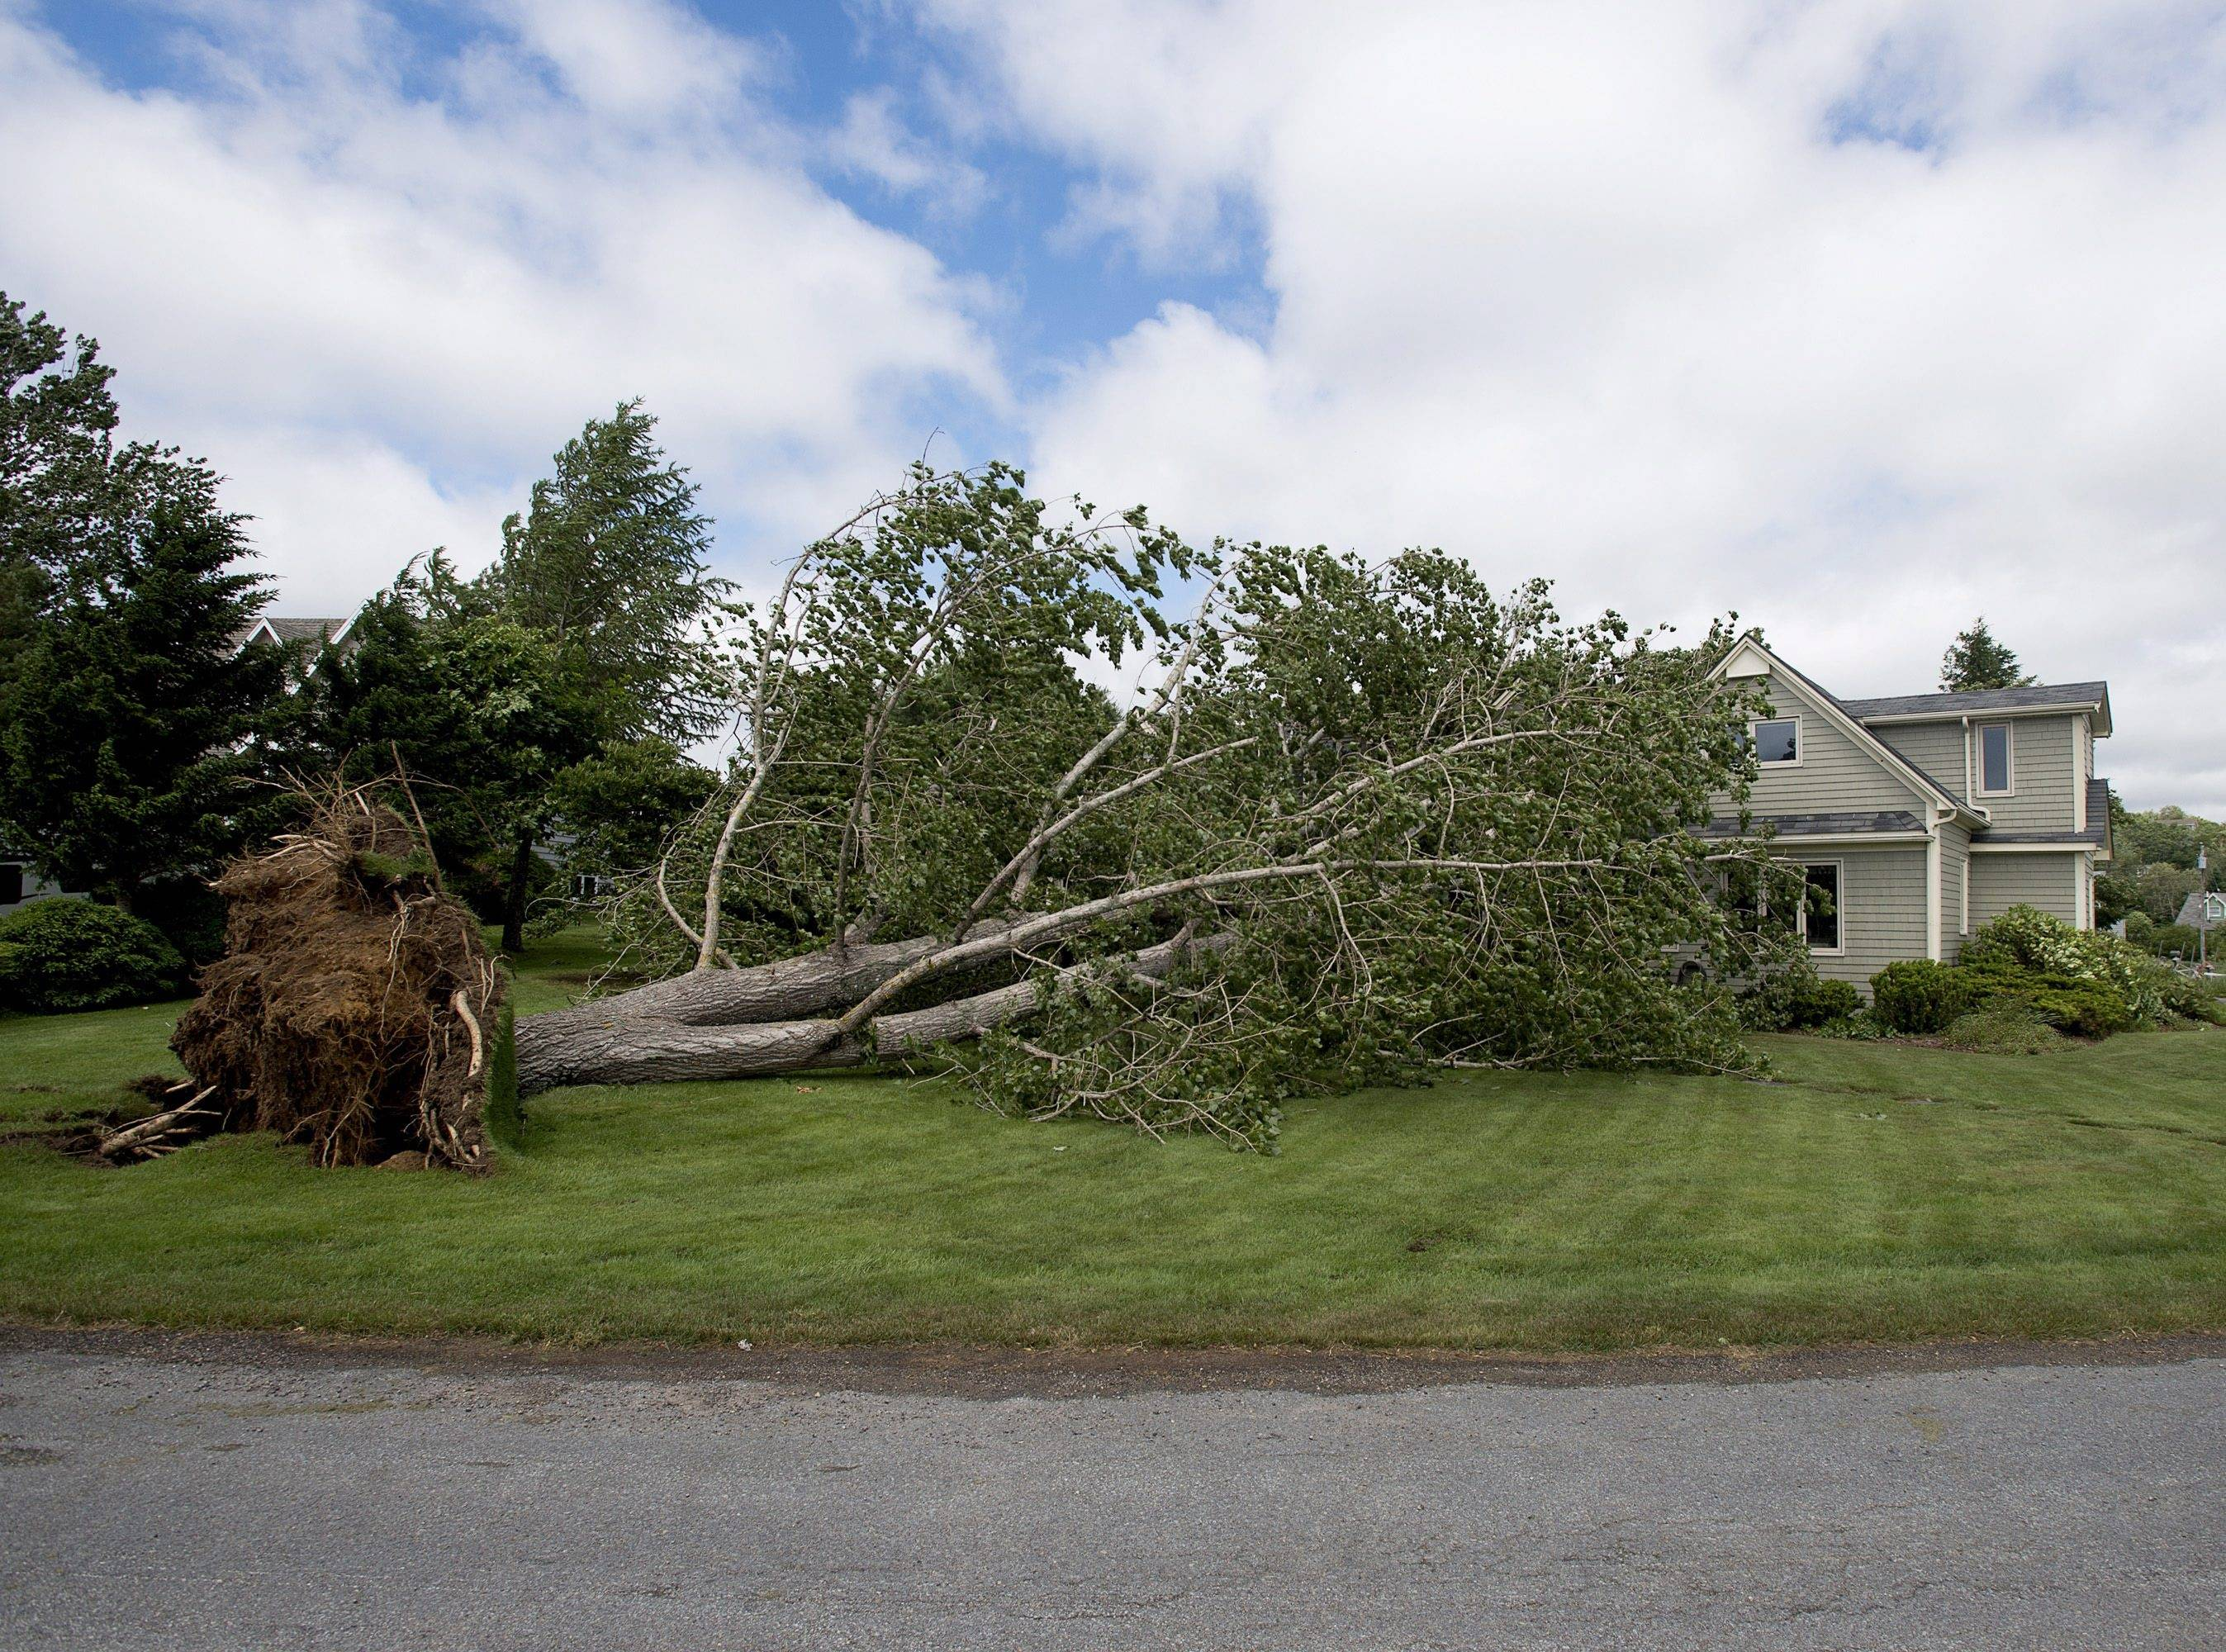 A large uprooted tree rests against a house in Oakland, Nova Scotia on Saturday. Thousands of homes and businesses were without power as heavy rains and high winds buffeted the region.